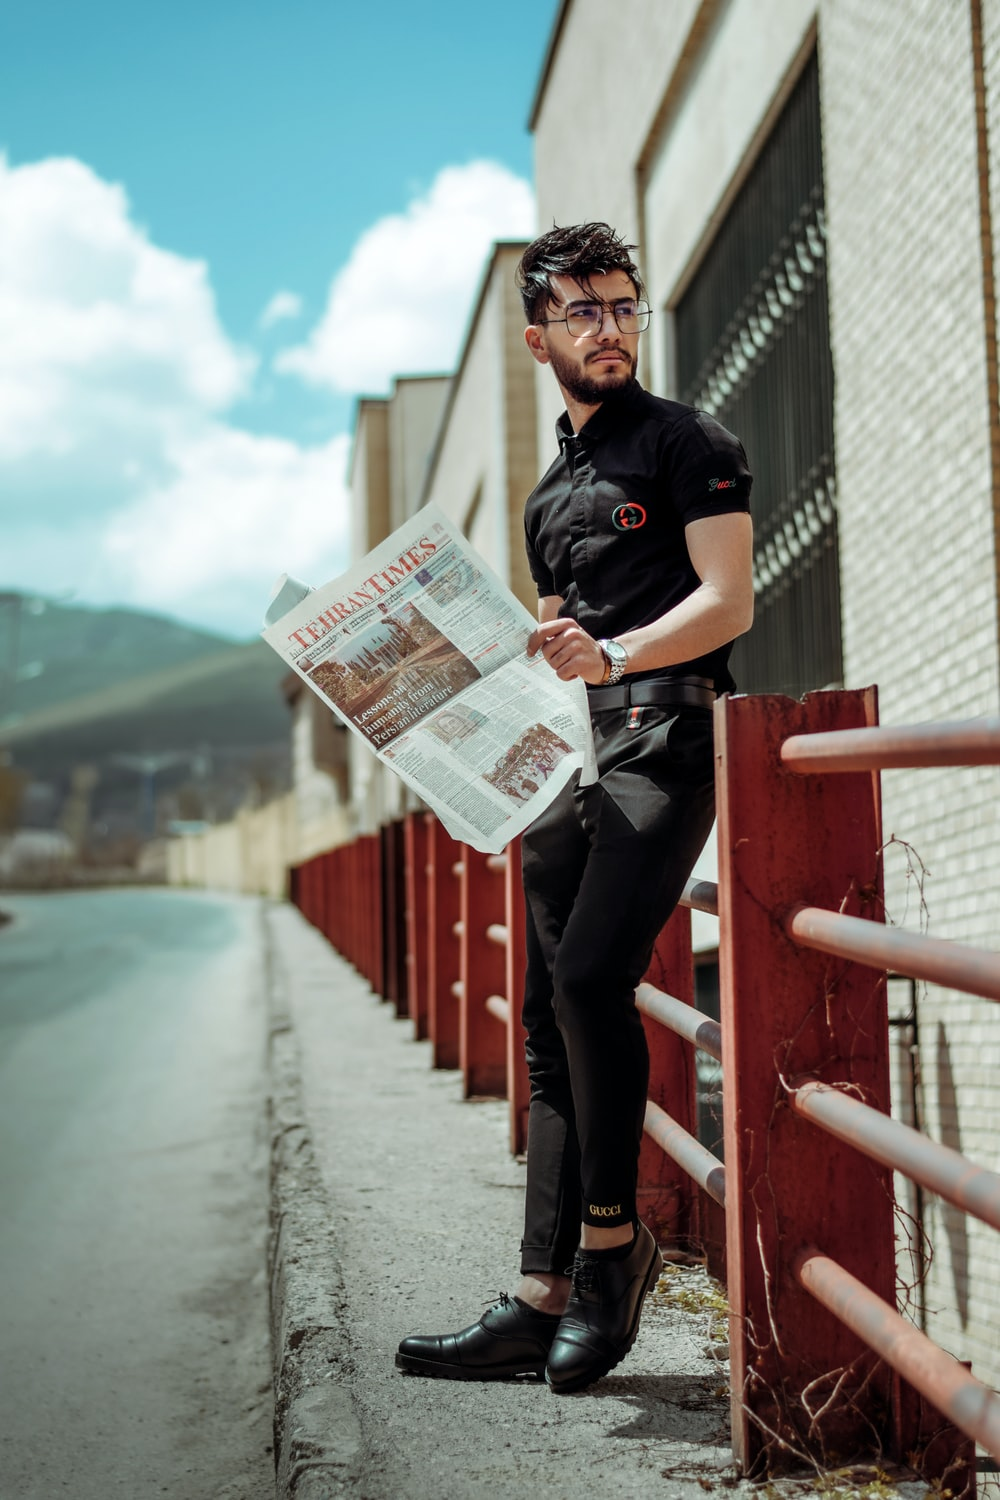 man in black polo shirt holding newspaper